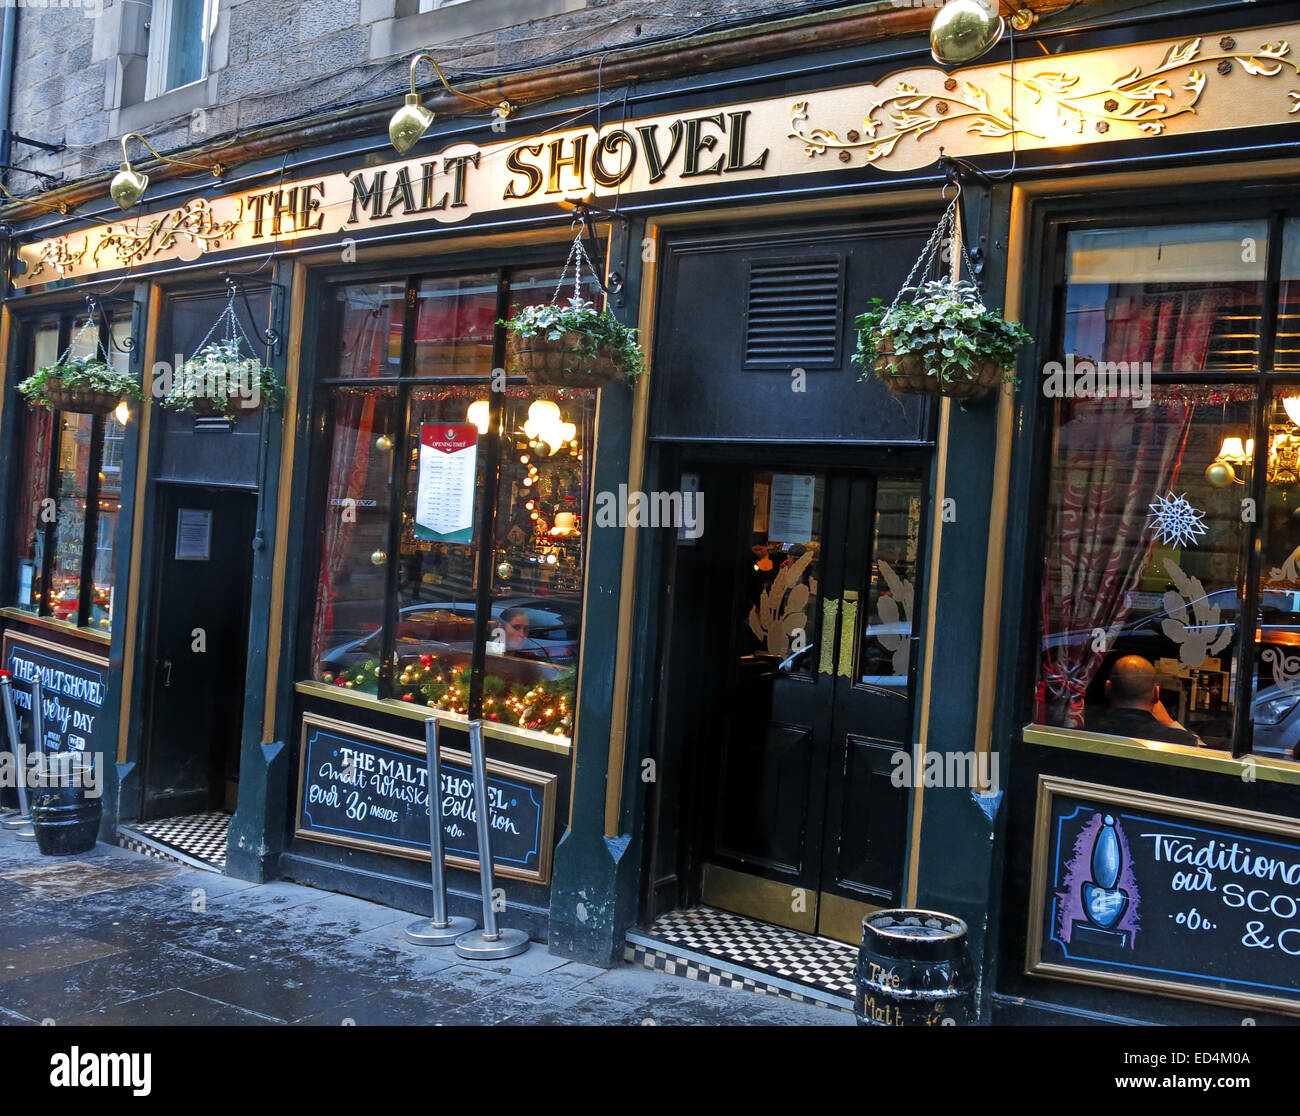 The Malt Shovel, Taylor Walker pub Edinburgh old Town, Scotland, UK in the evening - Stock Image